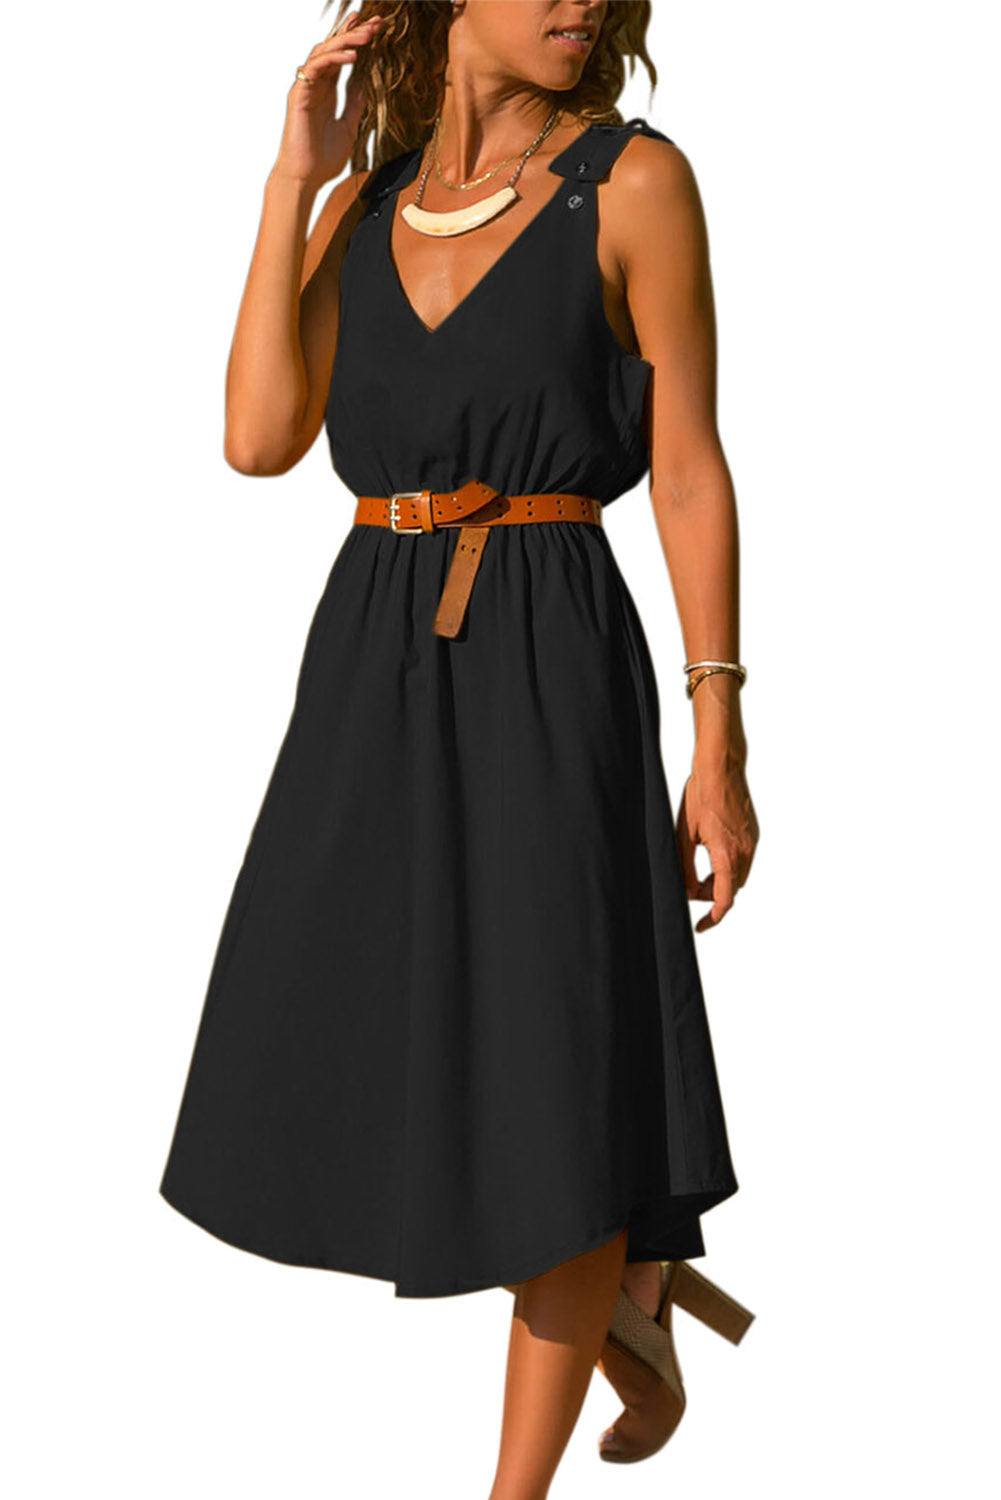 Black V Neck A-line Sundress